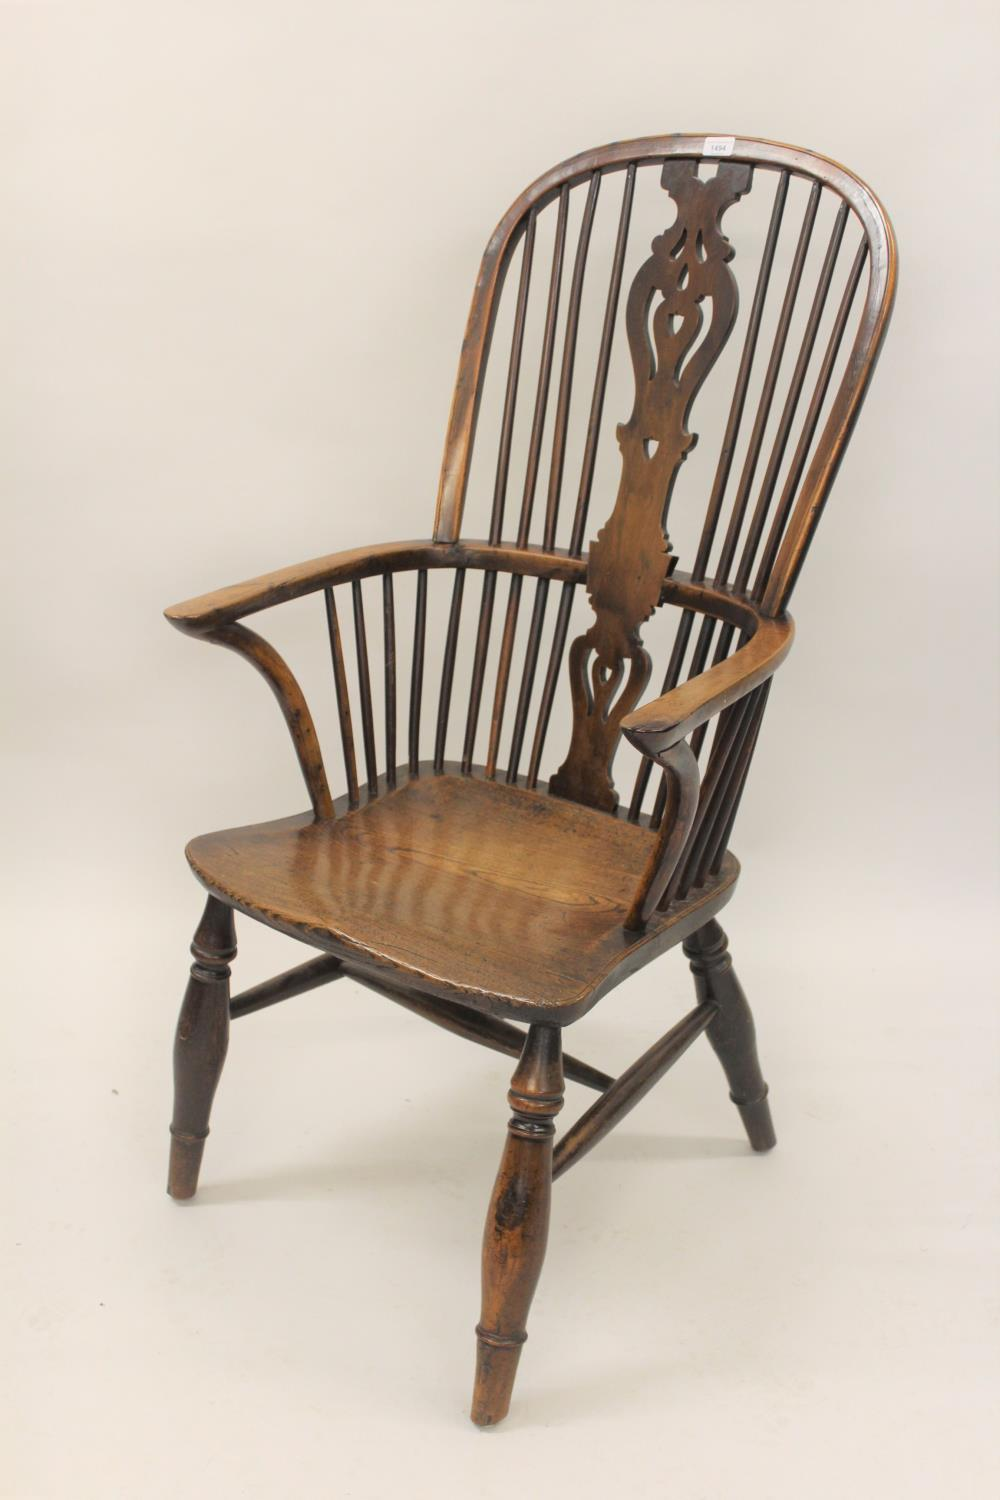 Large 19th Century yew and elm Windsor chair, the high hoop, stick and splat back above a carved